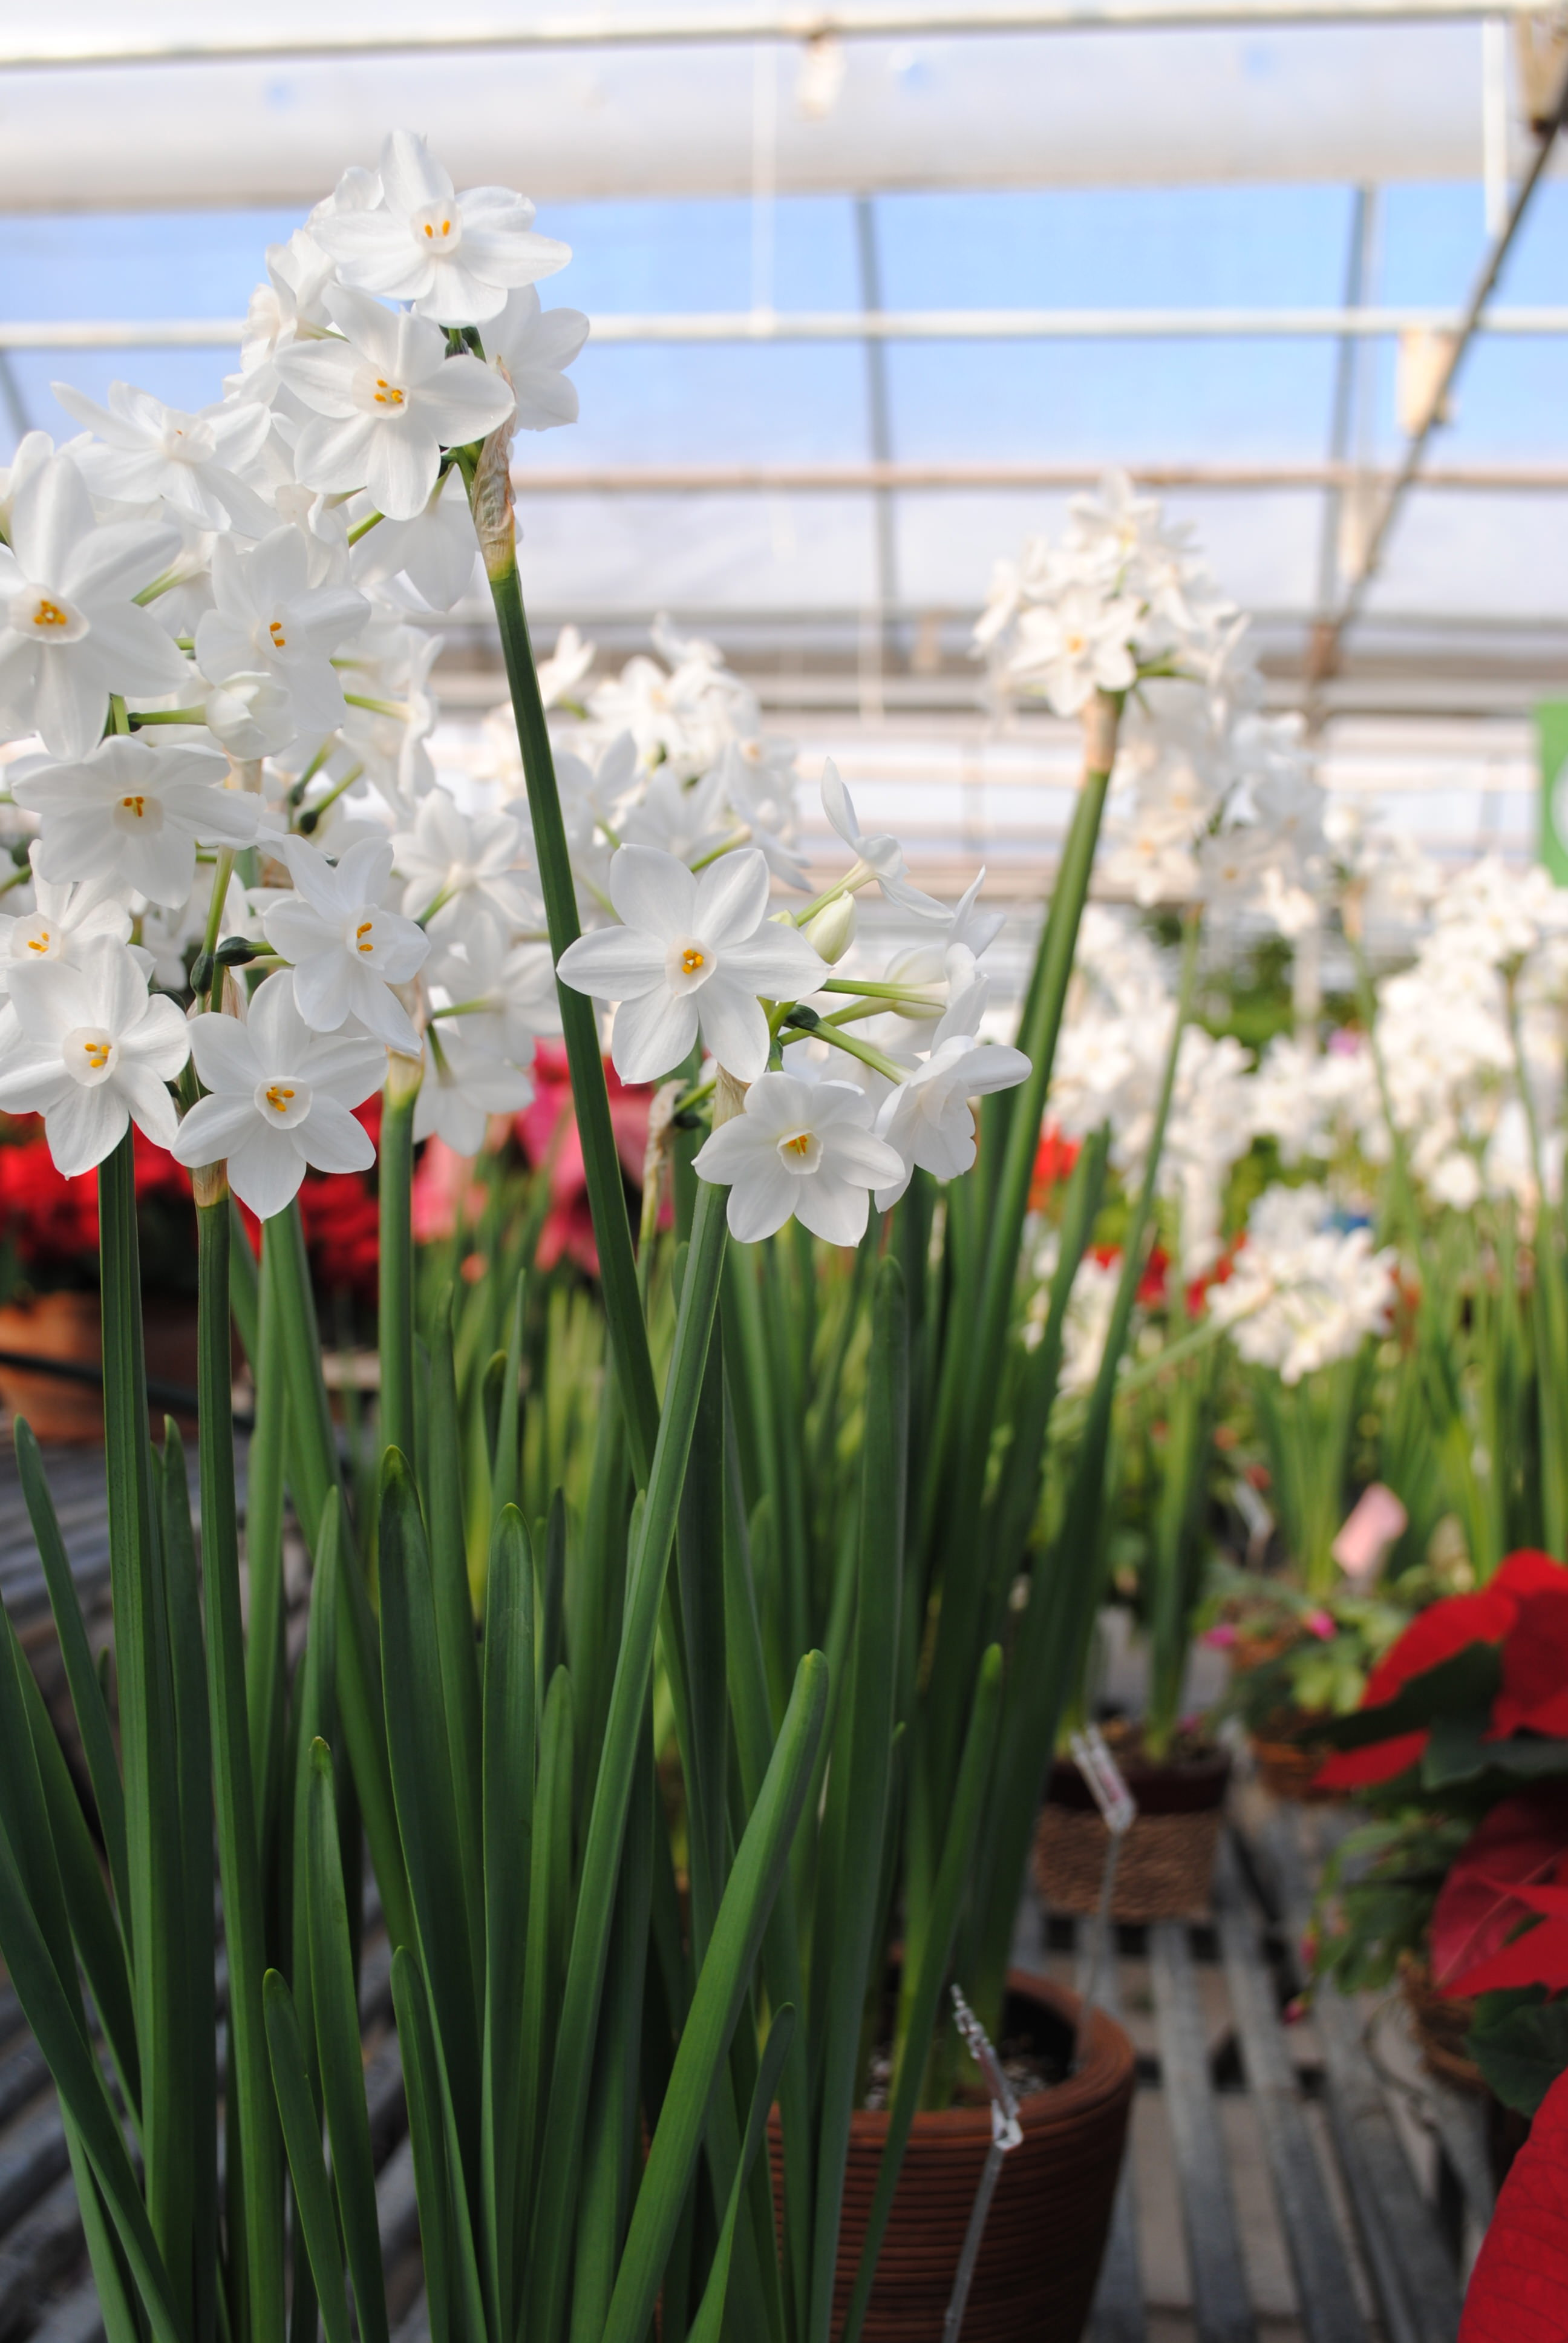 How To Force Paperwhite Amaryllis Bulbs Indoors Westwood Gardens